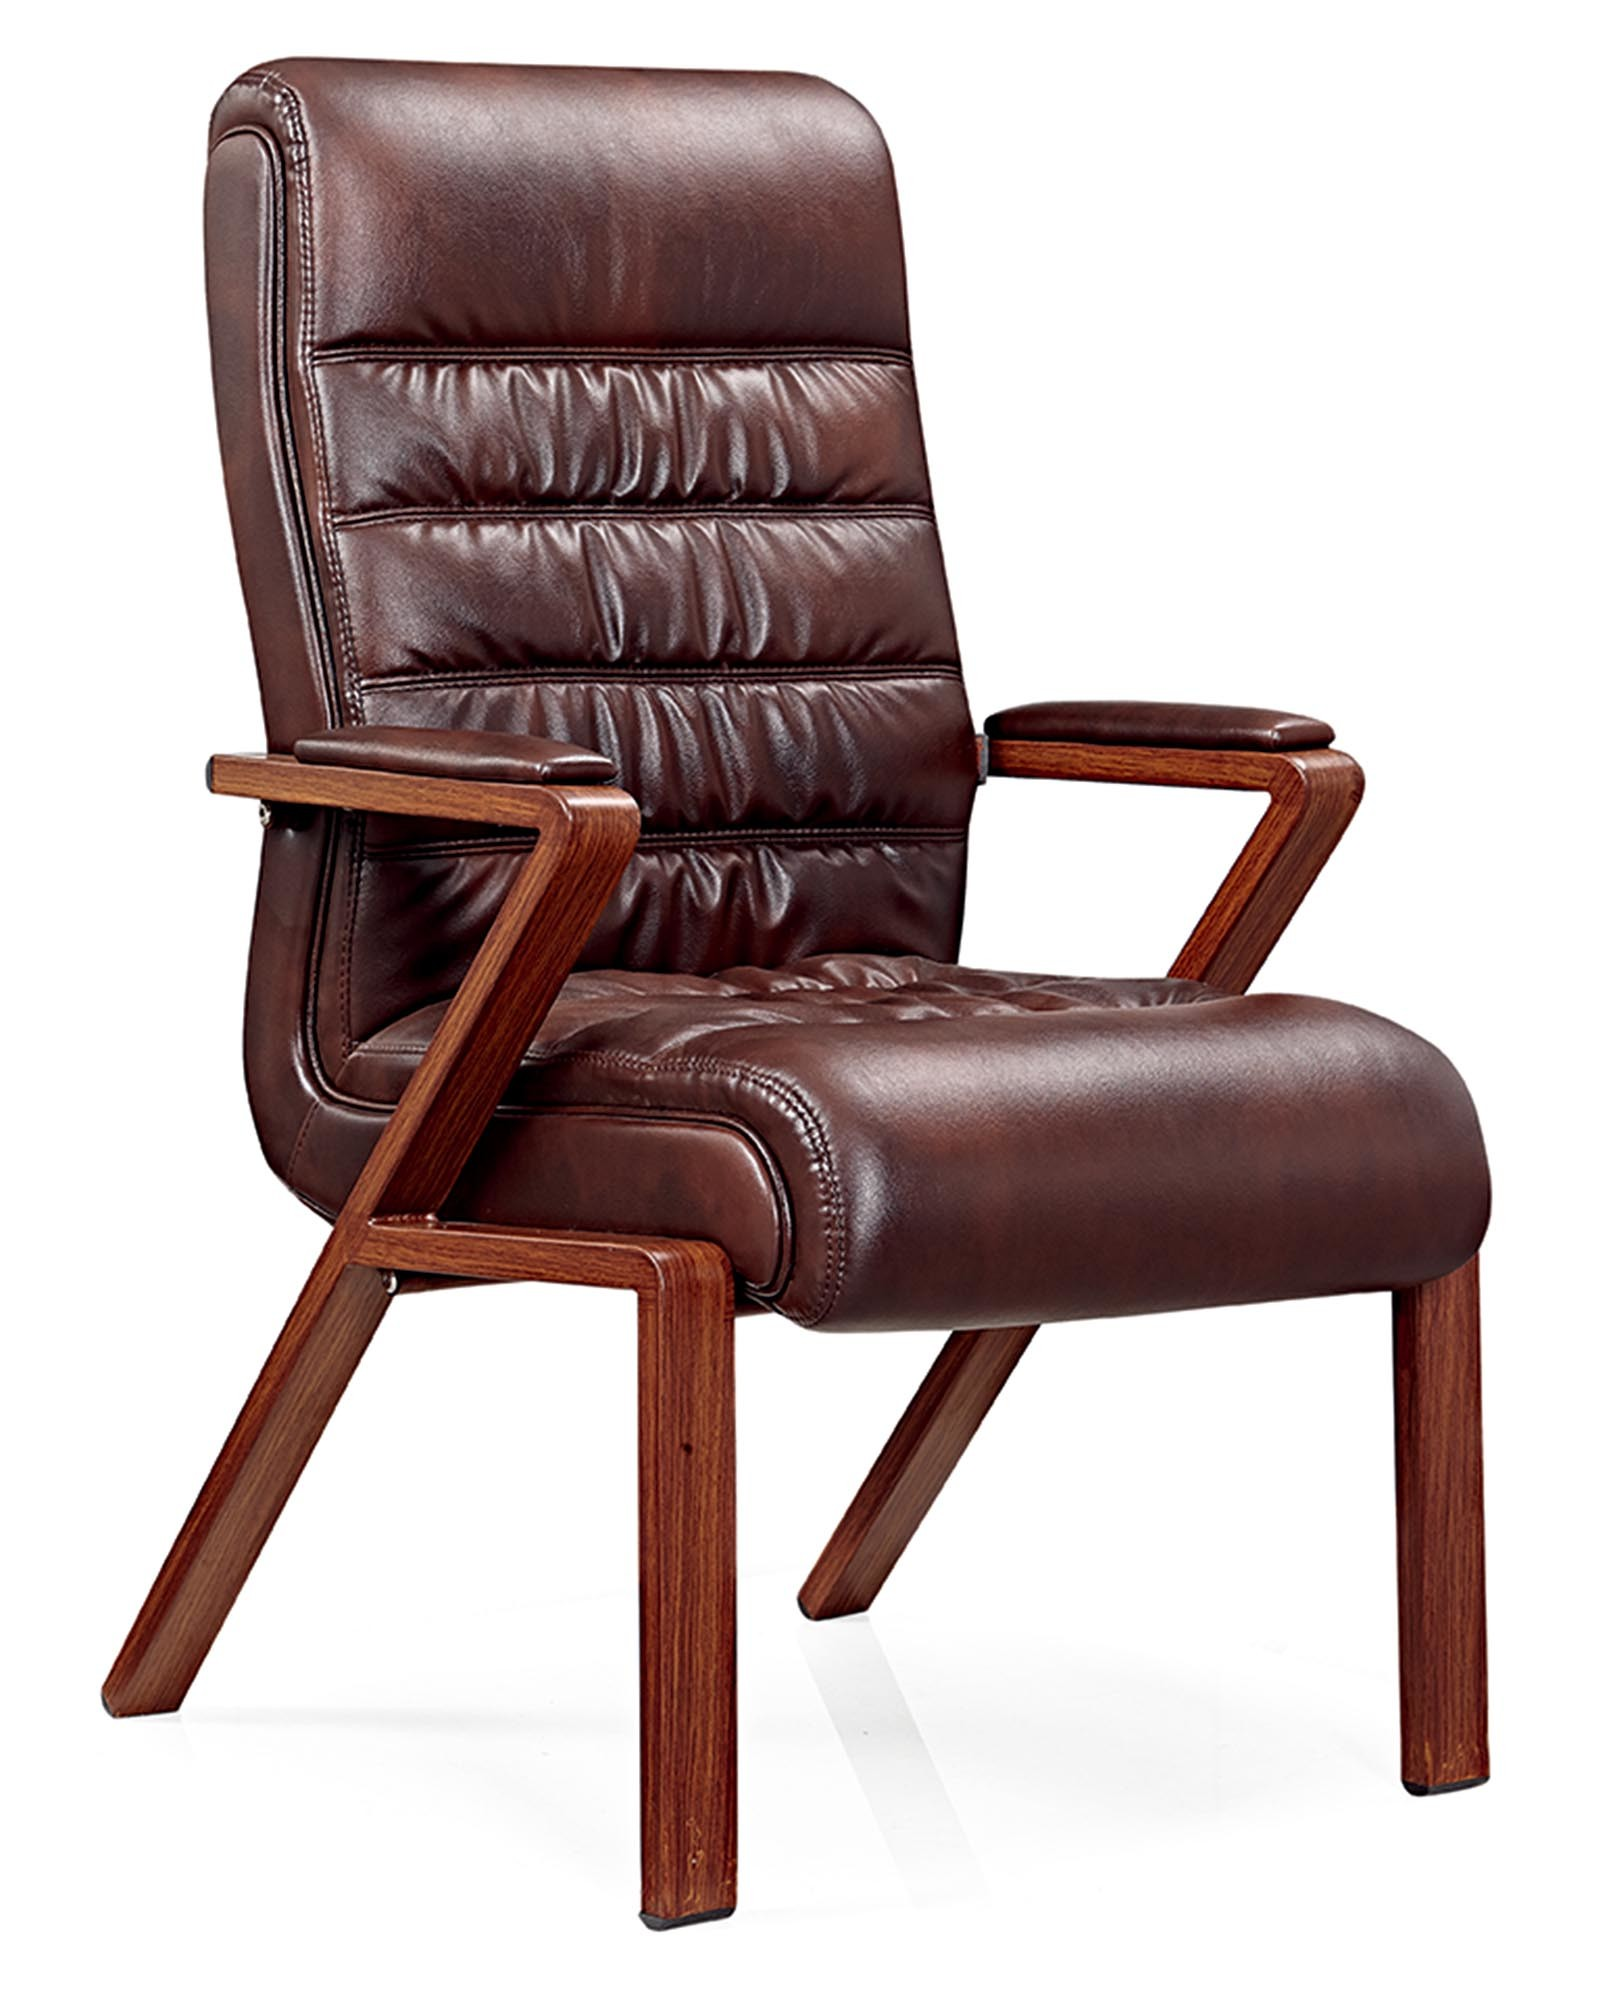 Leather And Wood Chair Hot Item Modern Brown Leather Wooden Office Chair For Visitor